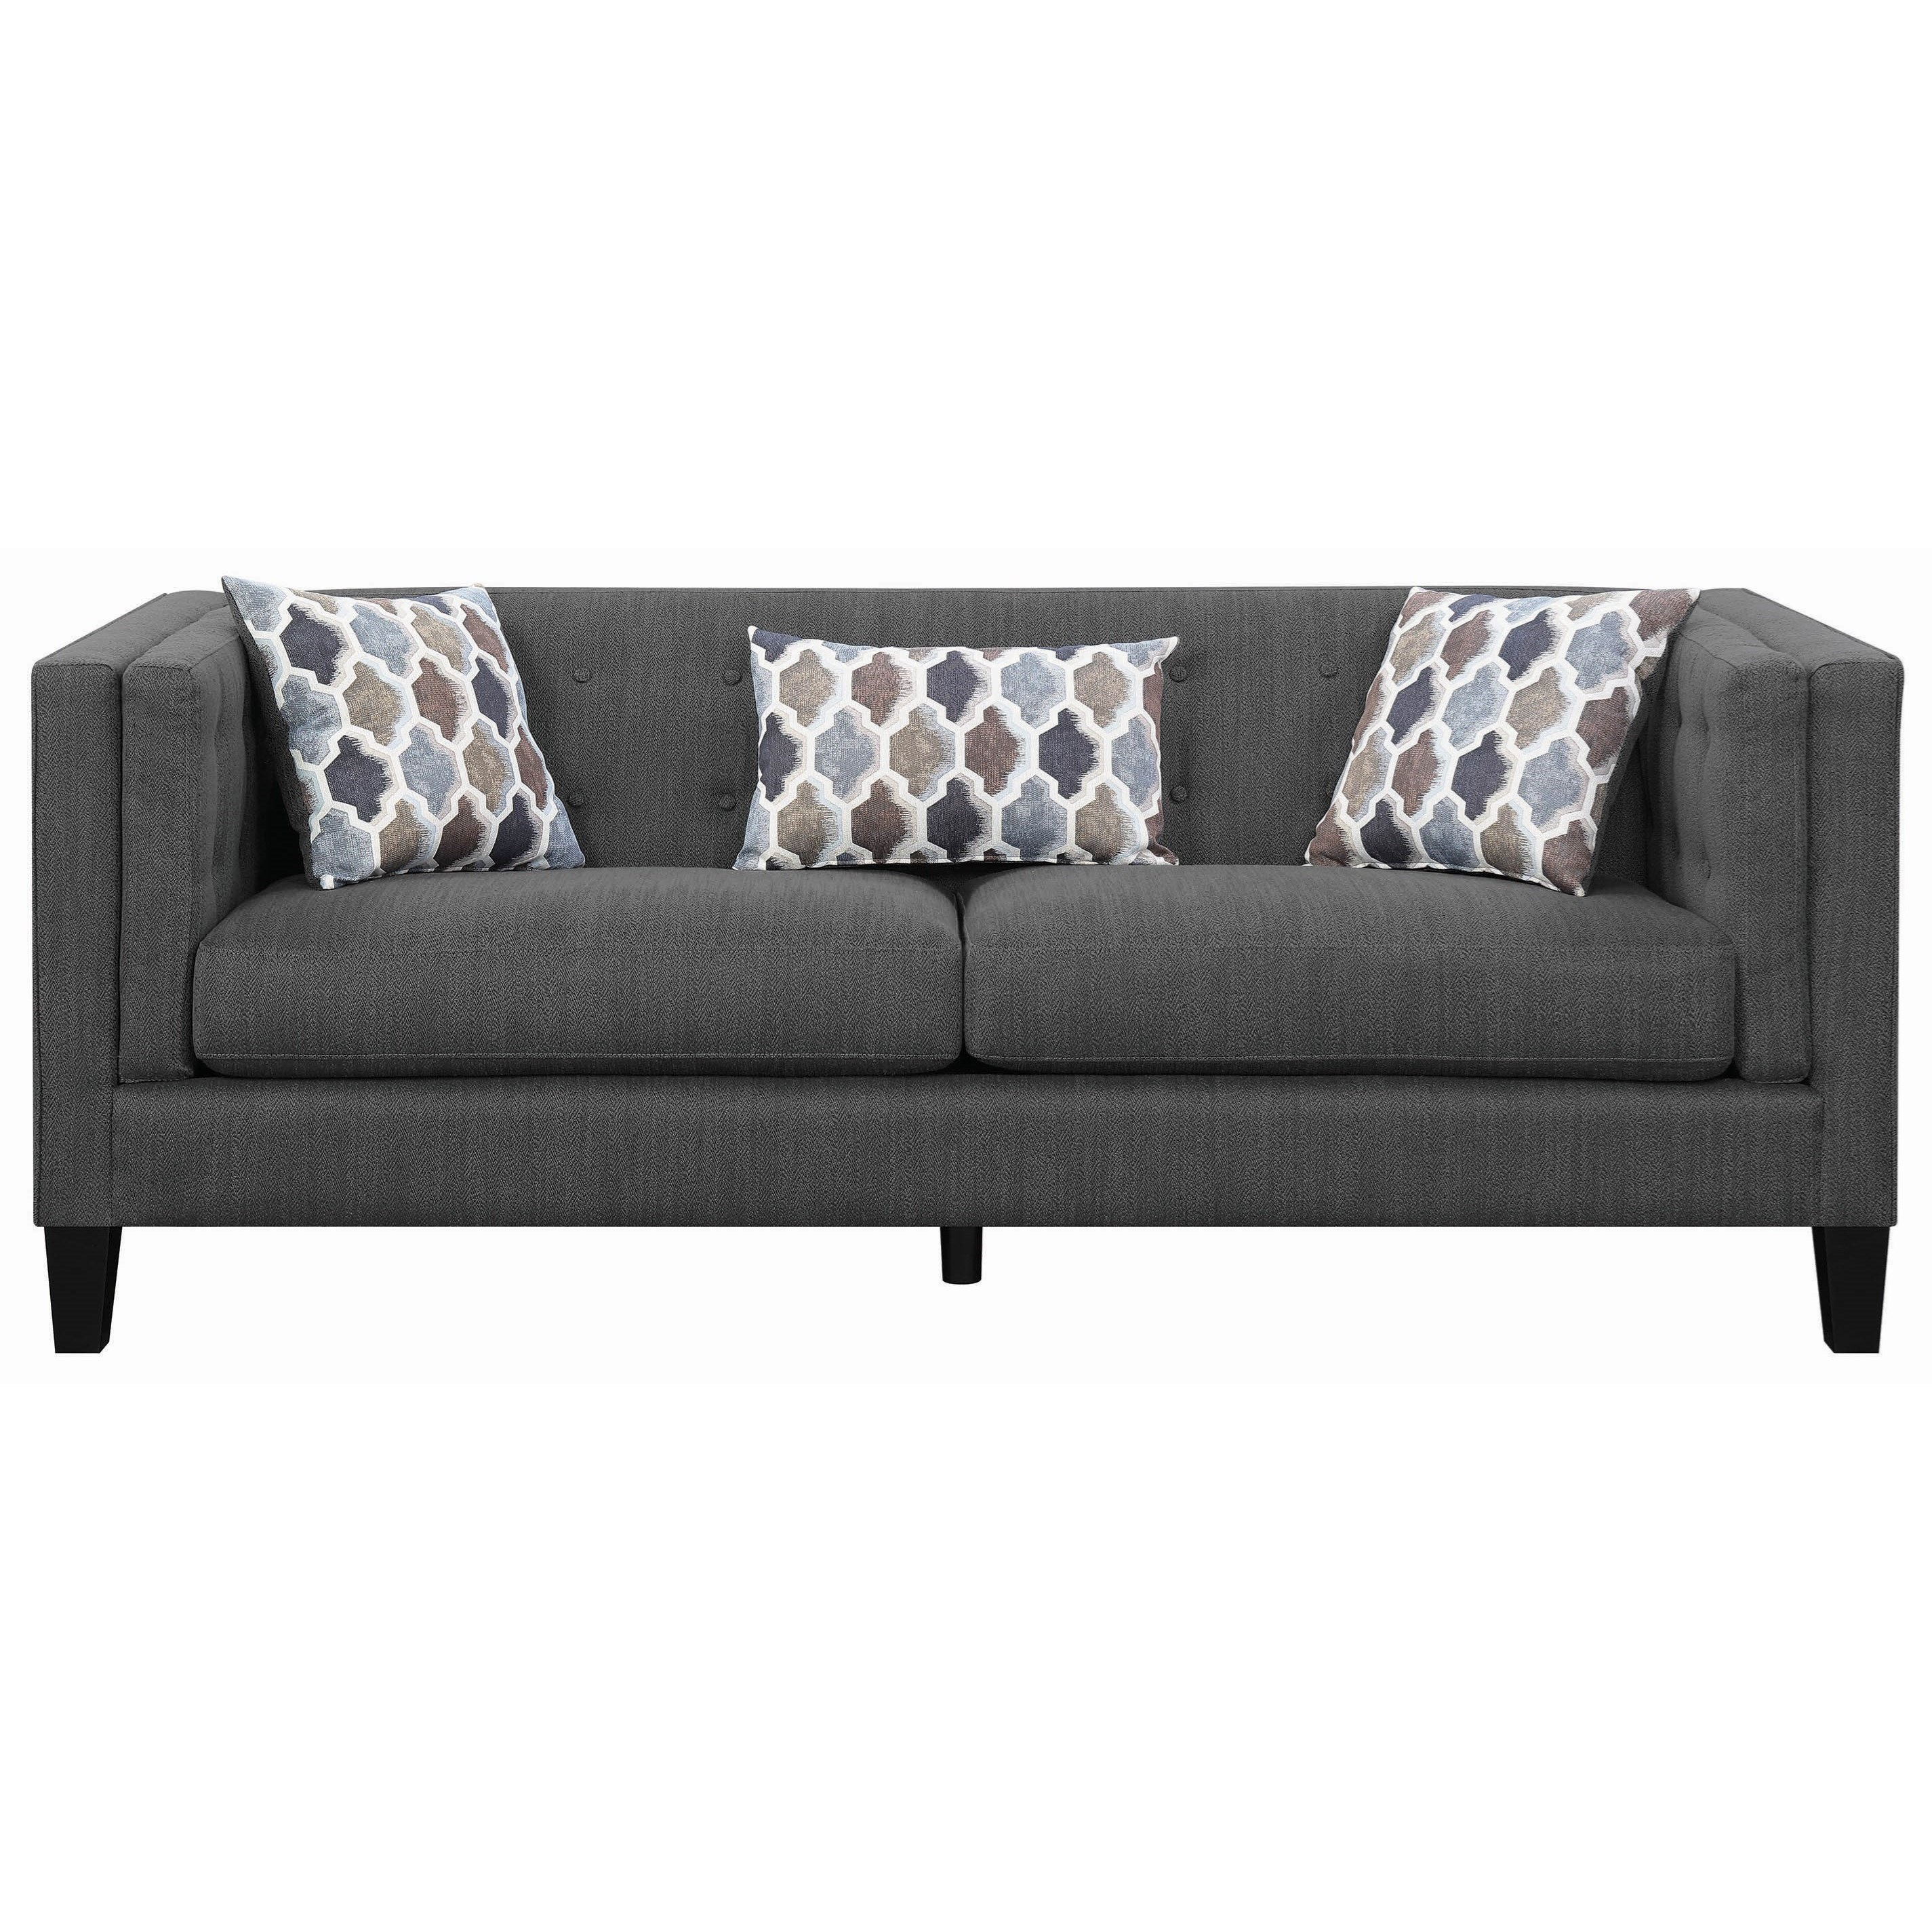 Sawyer Modern Sofa with Track Arms by Scott Living at Value City Furniture